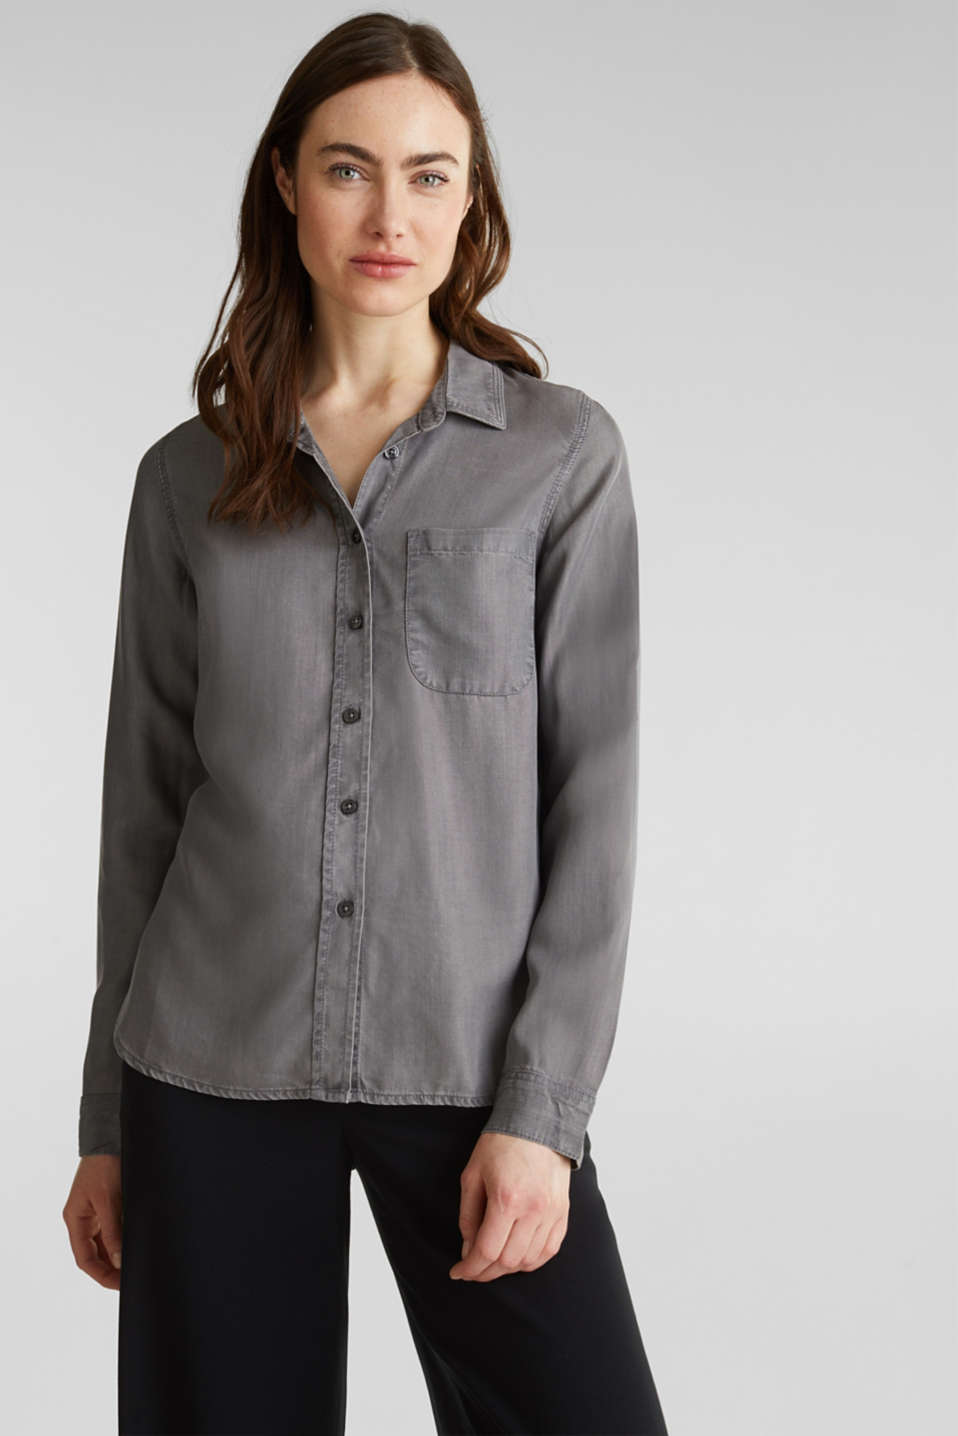 Esprit - Aus TENCEL™: Bluse im Denim-Look